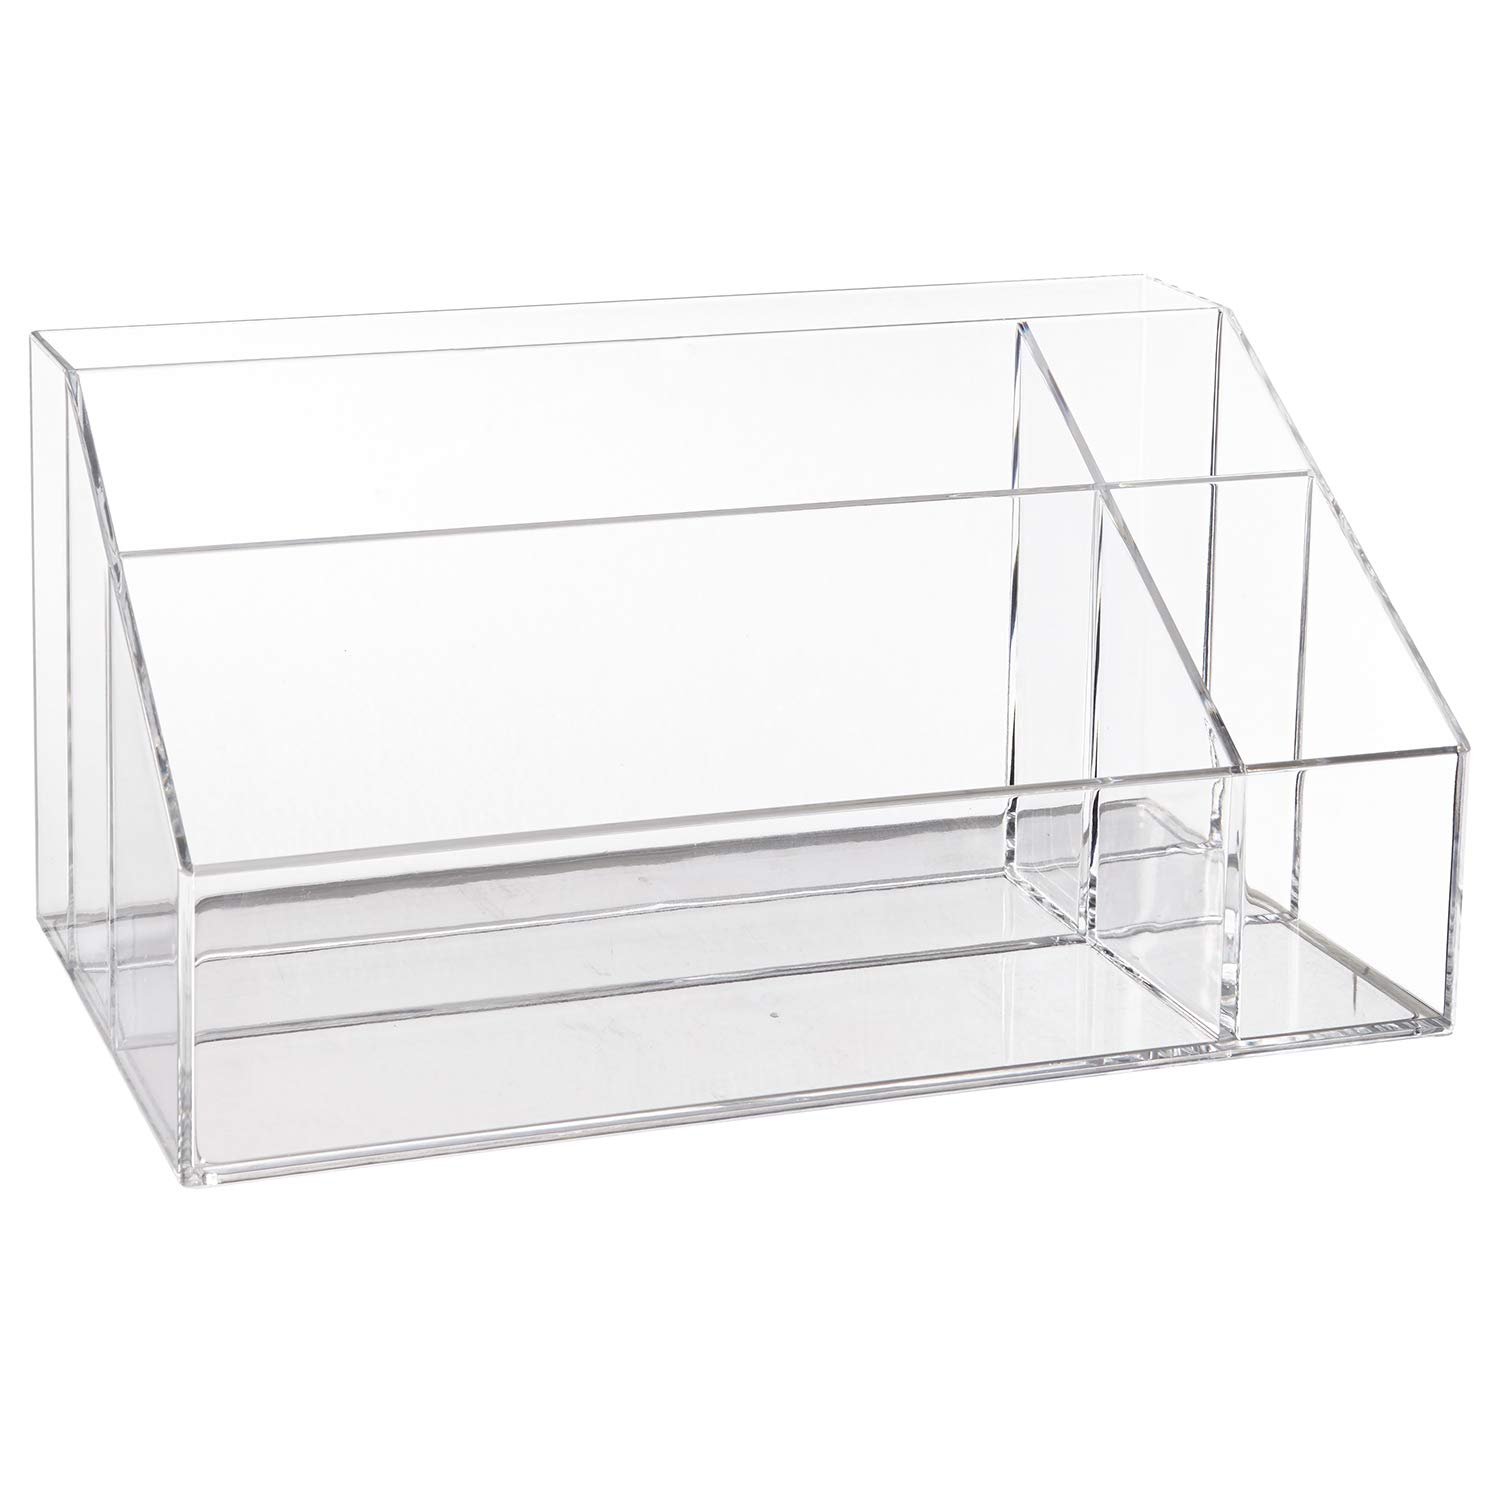 STORi Premium Quality Clear Plastic Makeup Palette and Brush Holder US Acrylic 6229